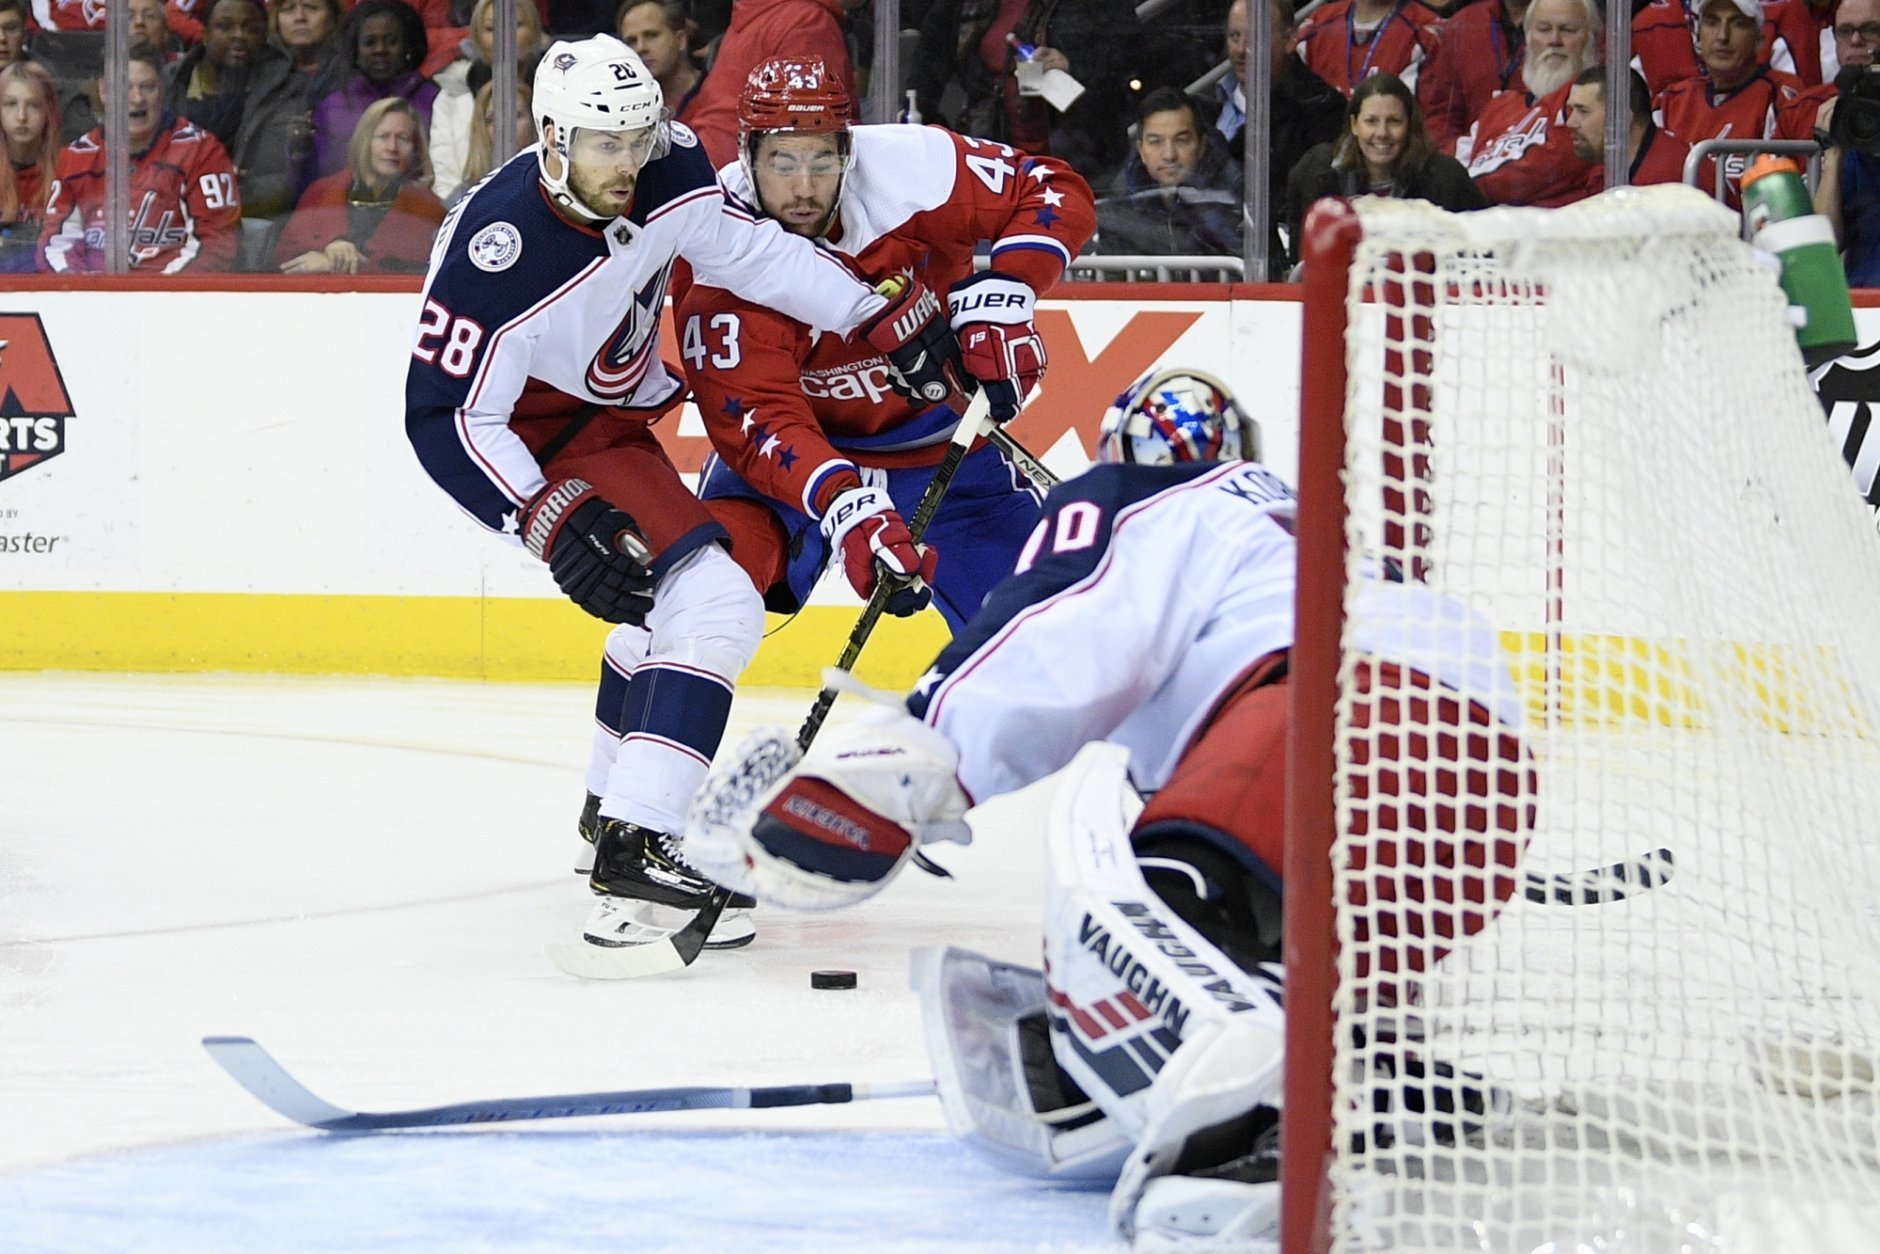 Washington Capitals right wing Tom Wilson (43) battles for the puck against Columbus Blue Jackets right wing Oliver Bjorkstrand (28), of Denmark, and goaltender Joonas Korpisalo (70), of Finland, during the first period of an NHL hockey game, Saturday, Jan. 12, 2019, in Washington. (AP Photo/Nick Wass)